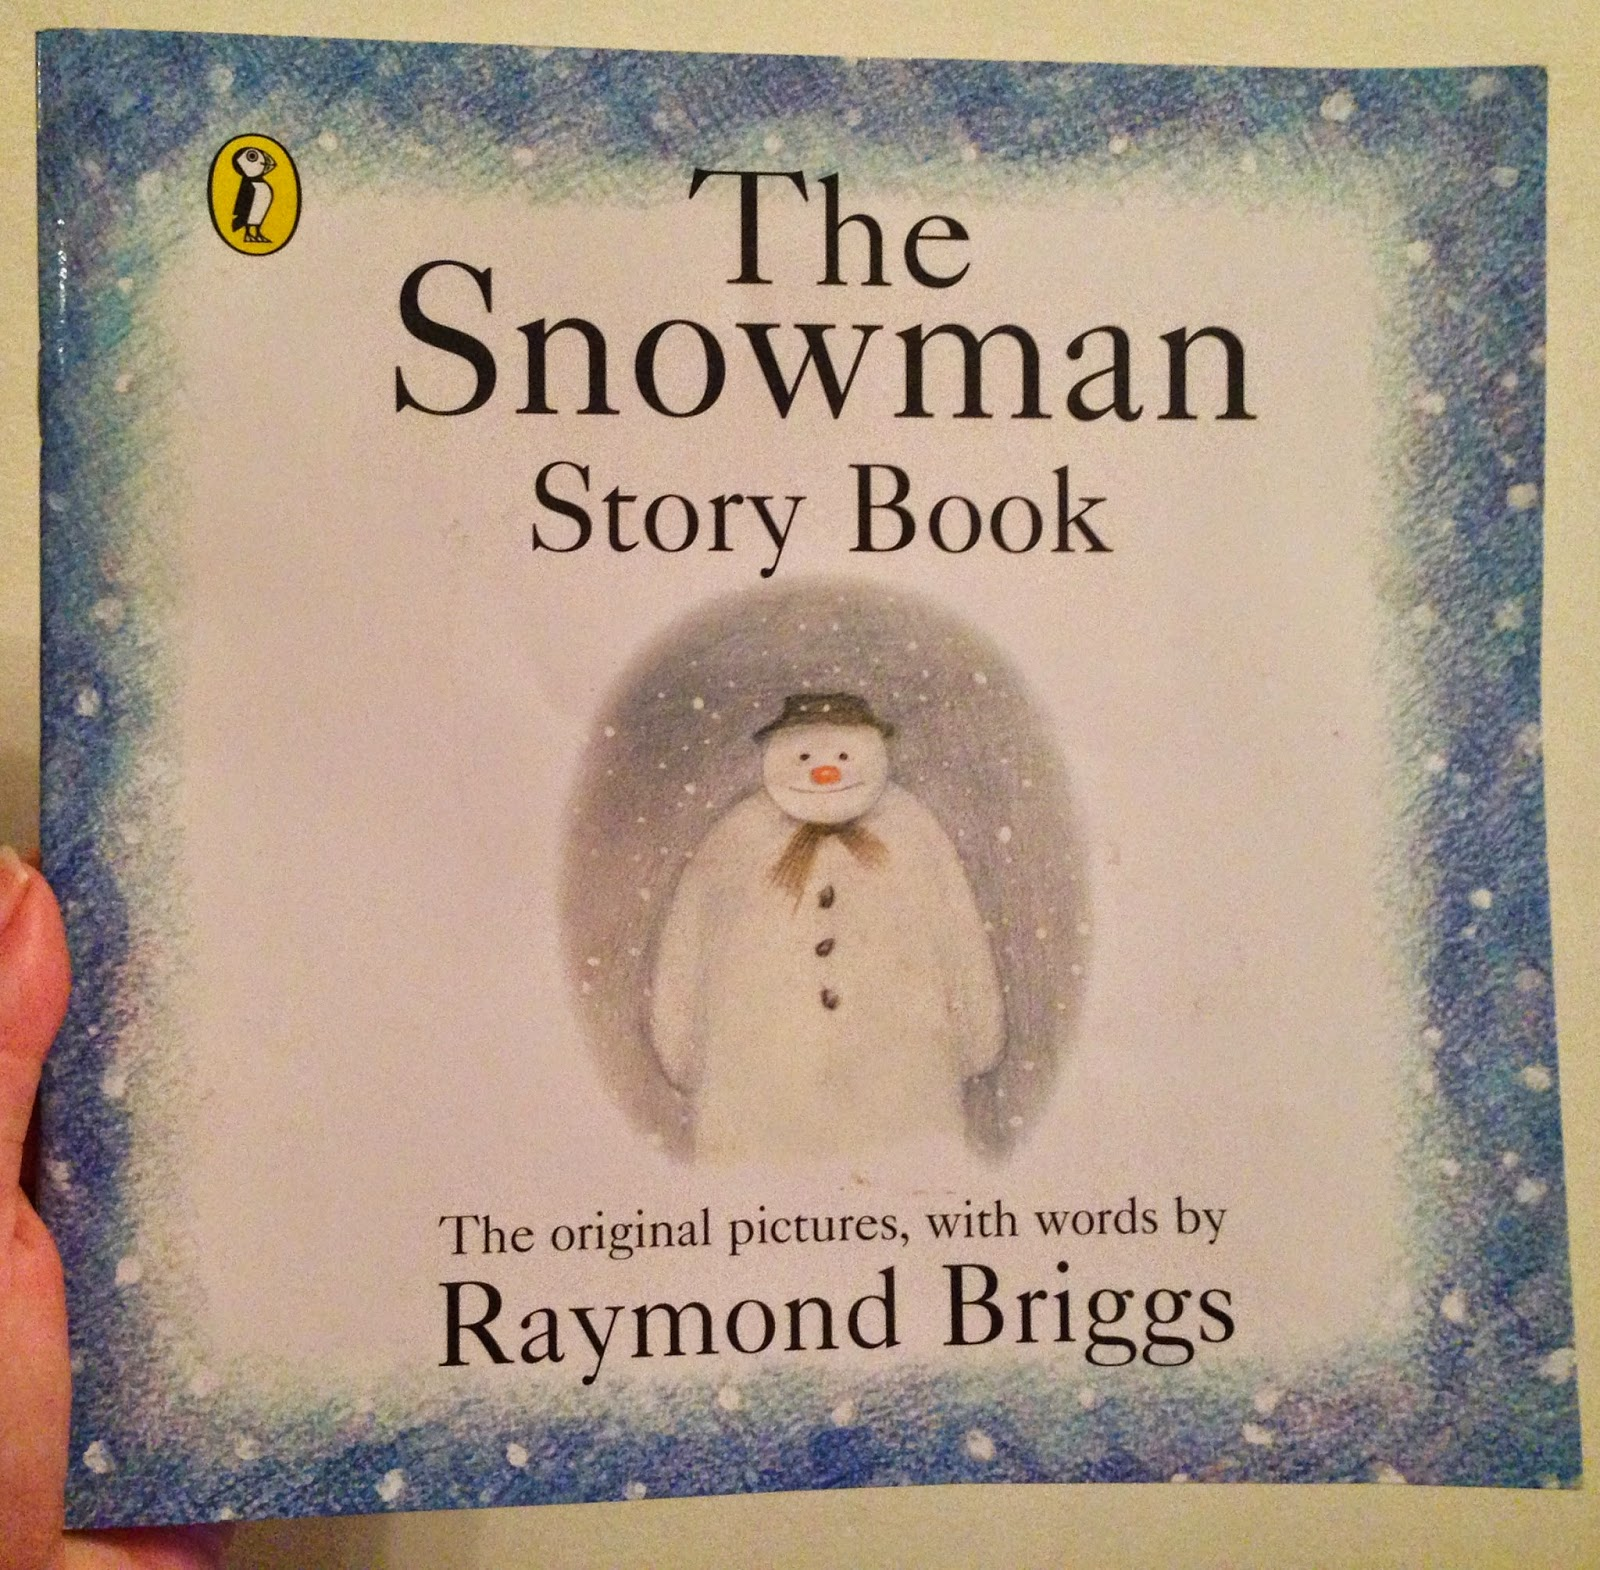 Our Christmas Book Advent tree | Ideas for the Best Children's Books to Buy this Christmas - The Snowman